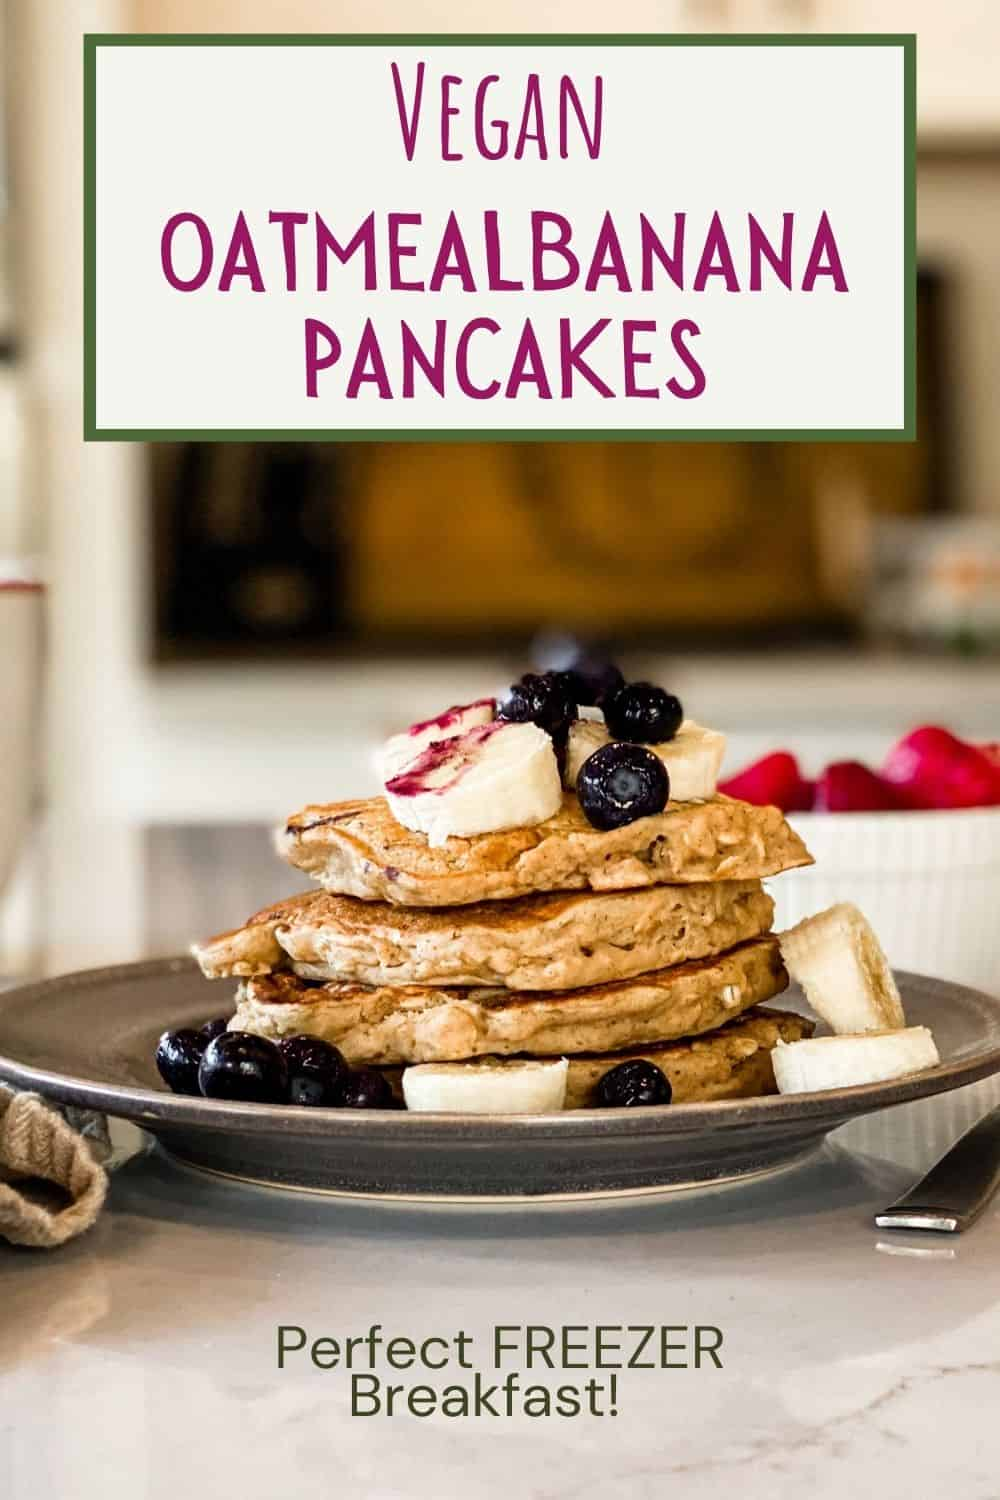 picture of stacked oatmeal banana pancakes topped with blueberries and banana. Words at top: Vegan Oatmeal Banana Pancakes Words on bottom: Perfect Freezer Breakfast